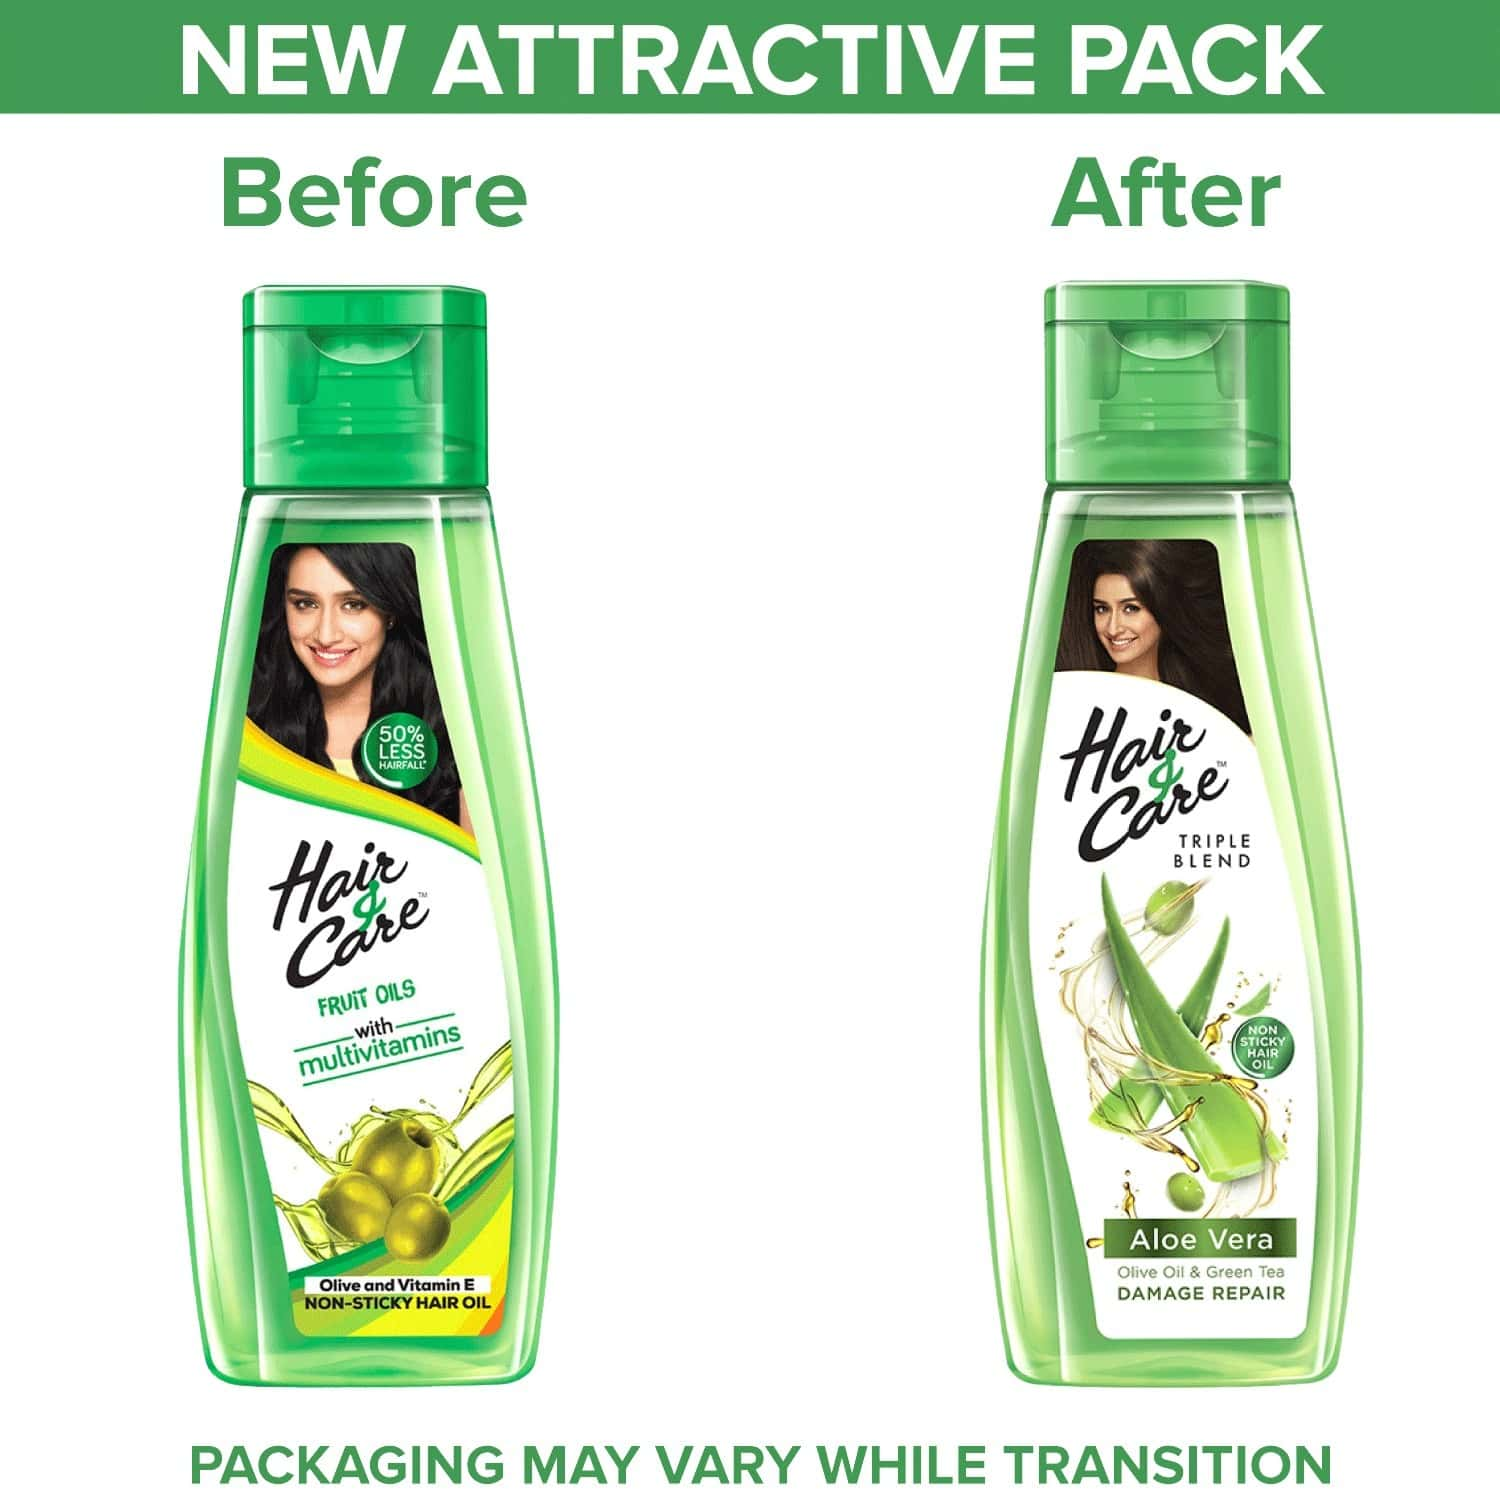 Hair & Care Damage Repair Non-sticky Hair Oil With Aloe Vera, Olive Oil & Green Tea - 300 Ml With Free 100 Ml